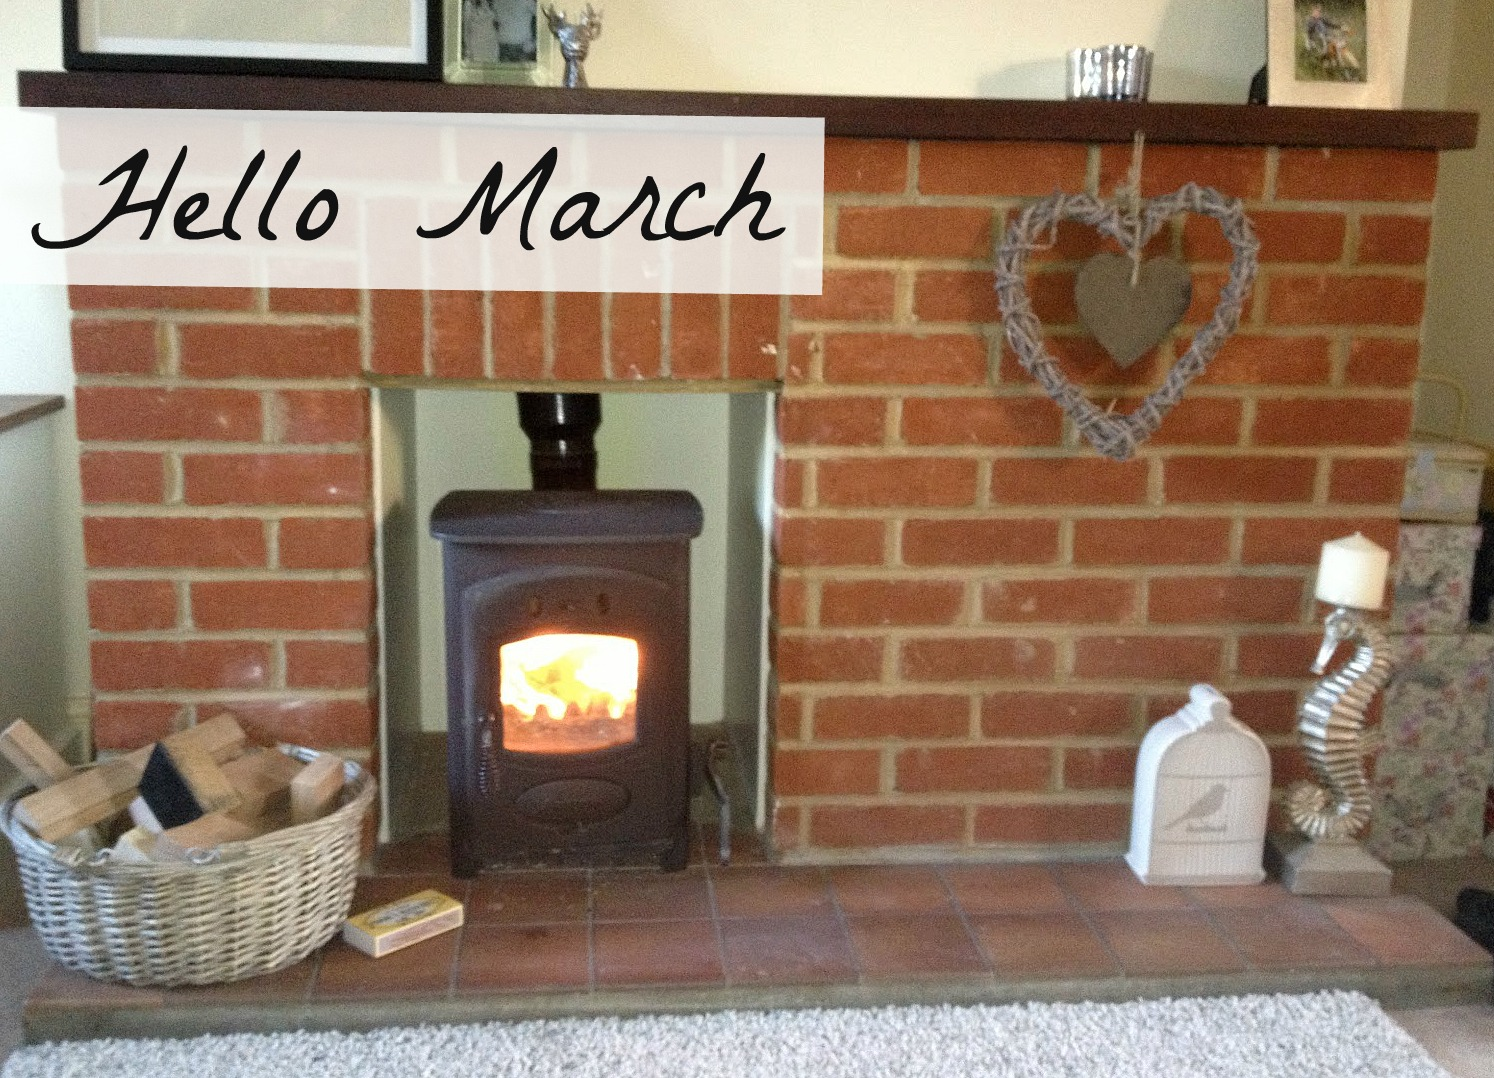 Formidable Joy - UK Fashion, Beauty & Lifestyle blog | Lifestyle | Hello March | March events in London & what's on - Drive In Film Club, Asking Alexandria; Not Another Bunch of Flowers,